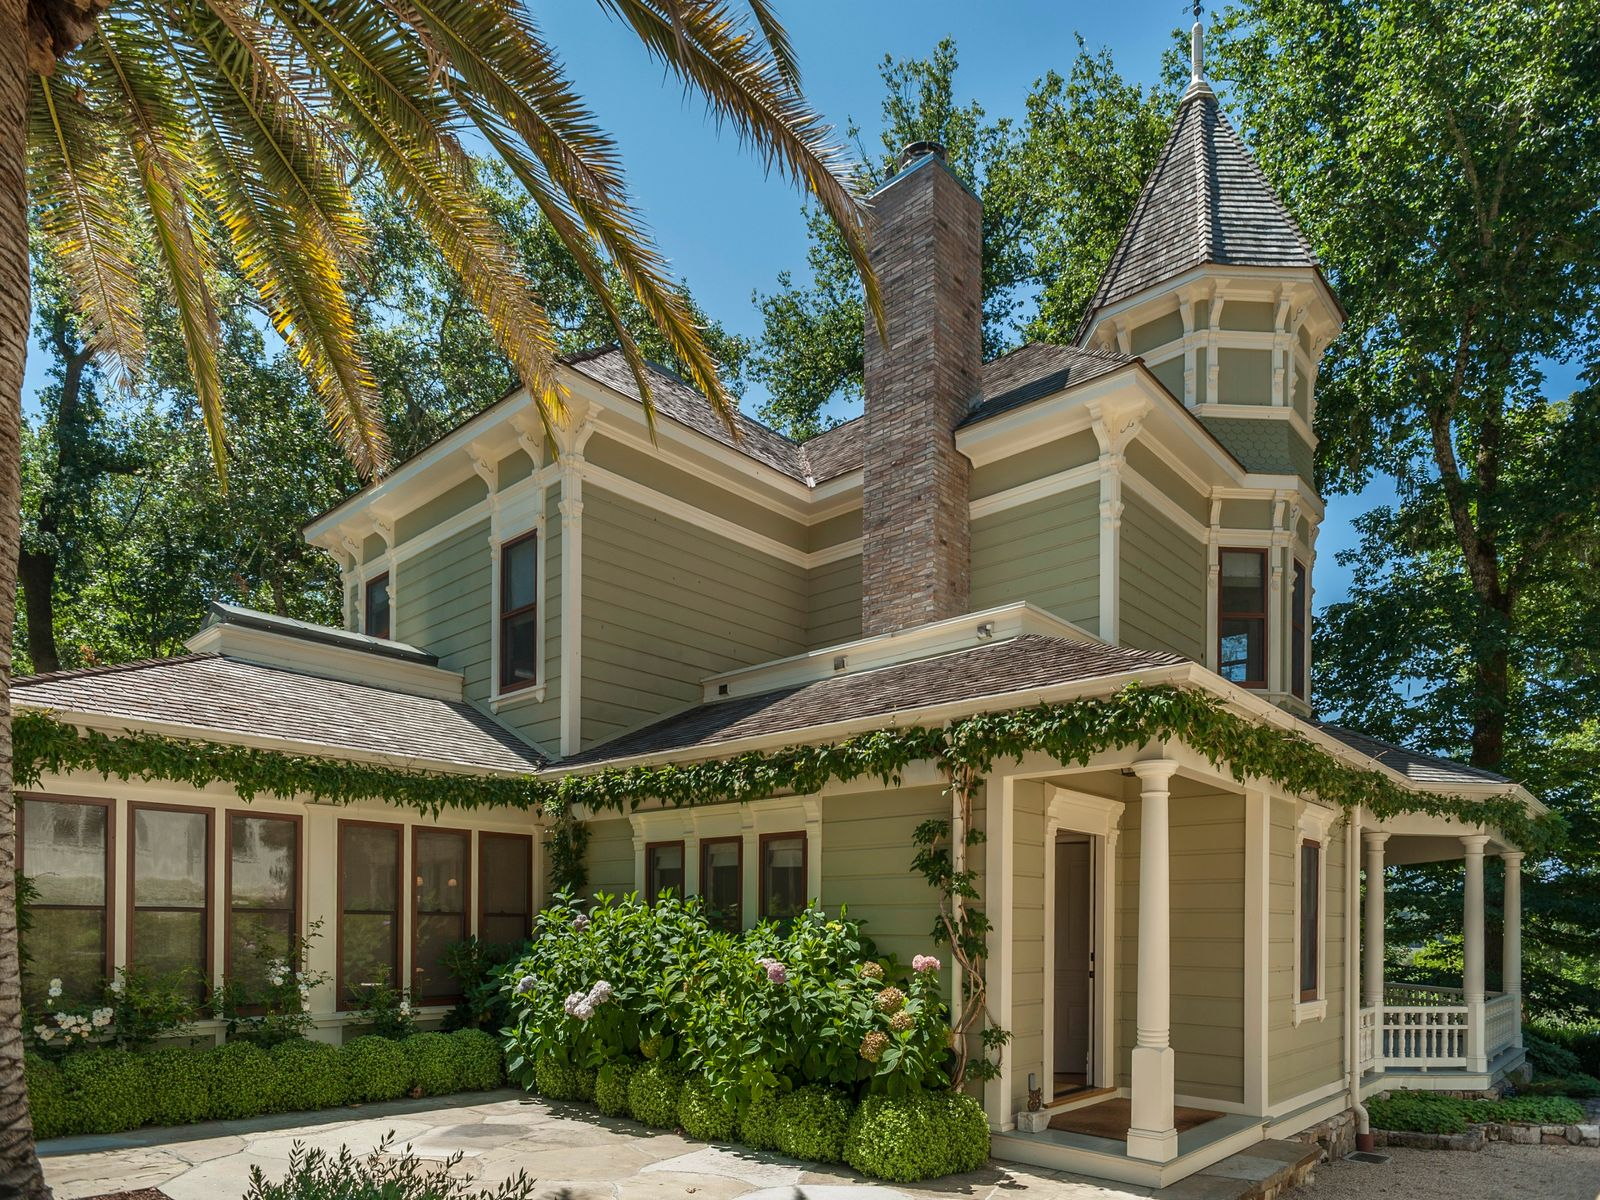 Meadowood Modern Victorian, Saint Helena CA Single Family Home - Sonoma - Napa Real Estate